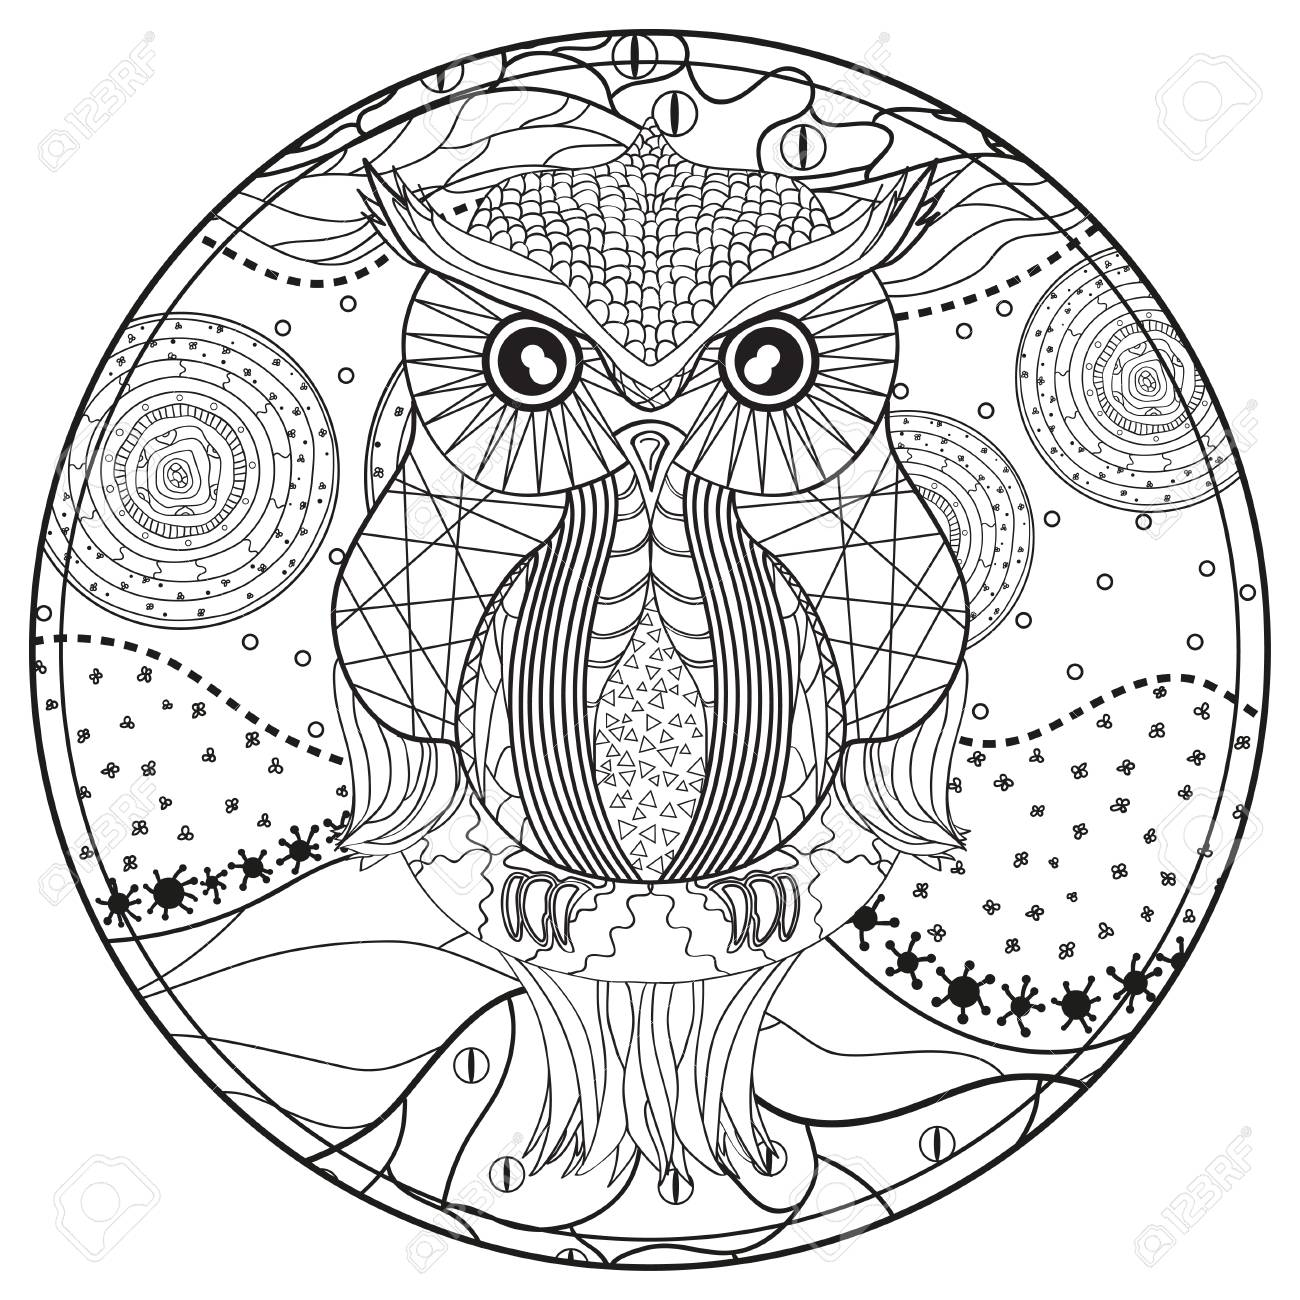 Mandala With Owl Design Zentangle Hand Drawn Abstract Patterns